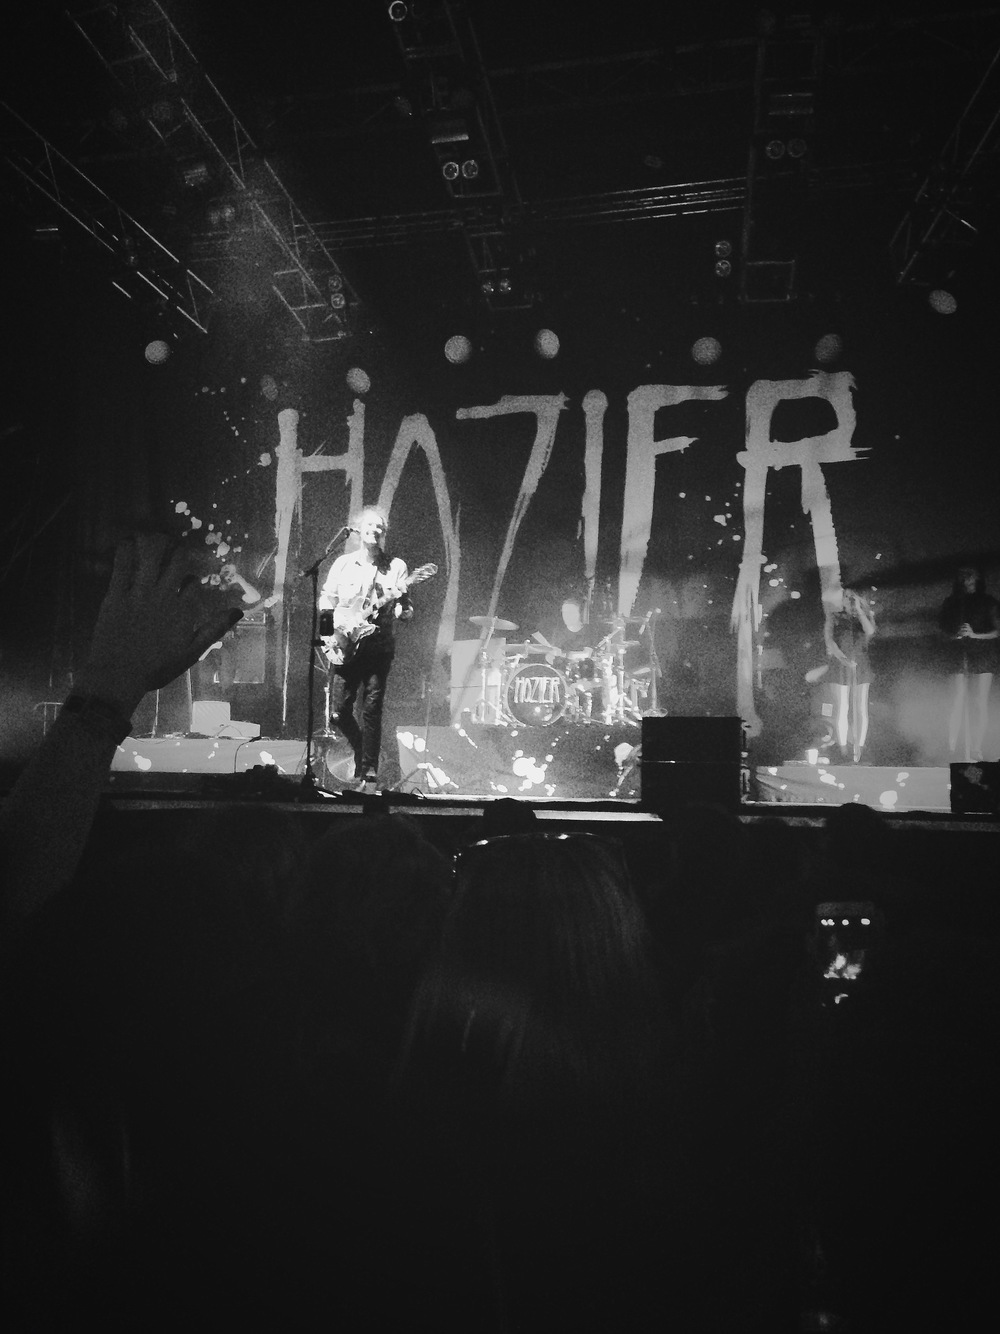 being this close to Hozier during a performance was a dream come true.